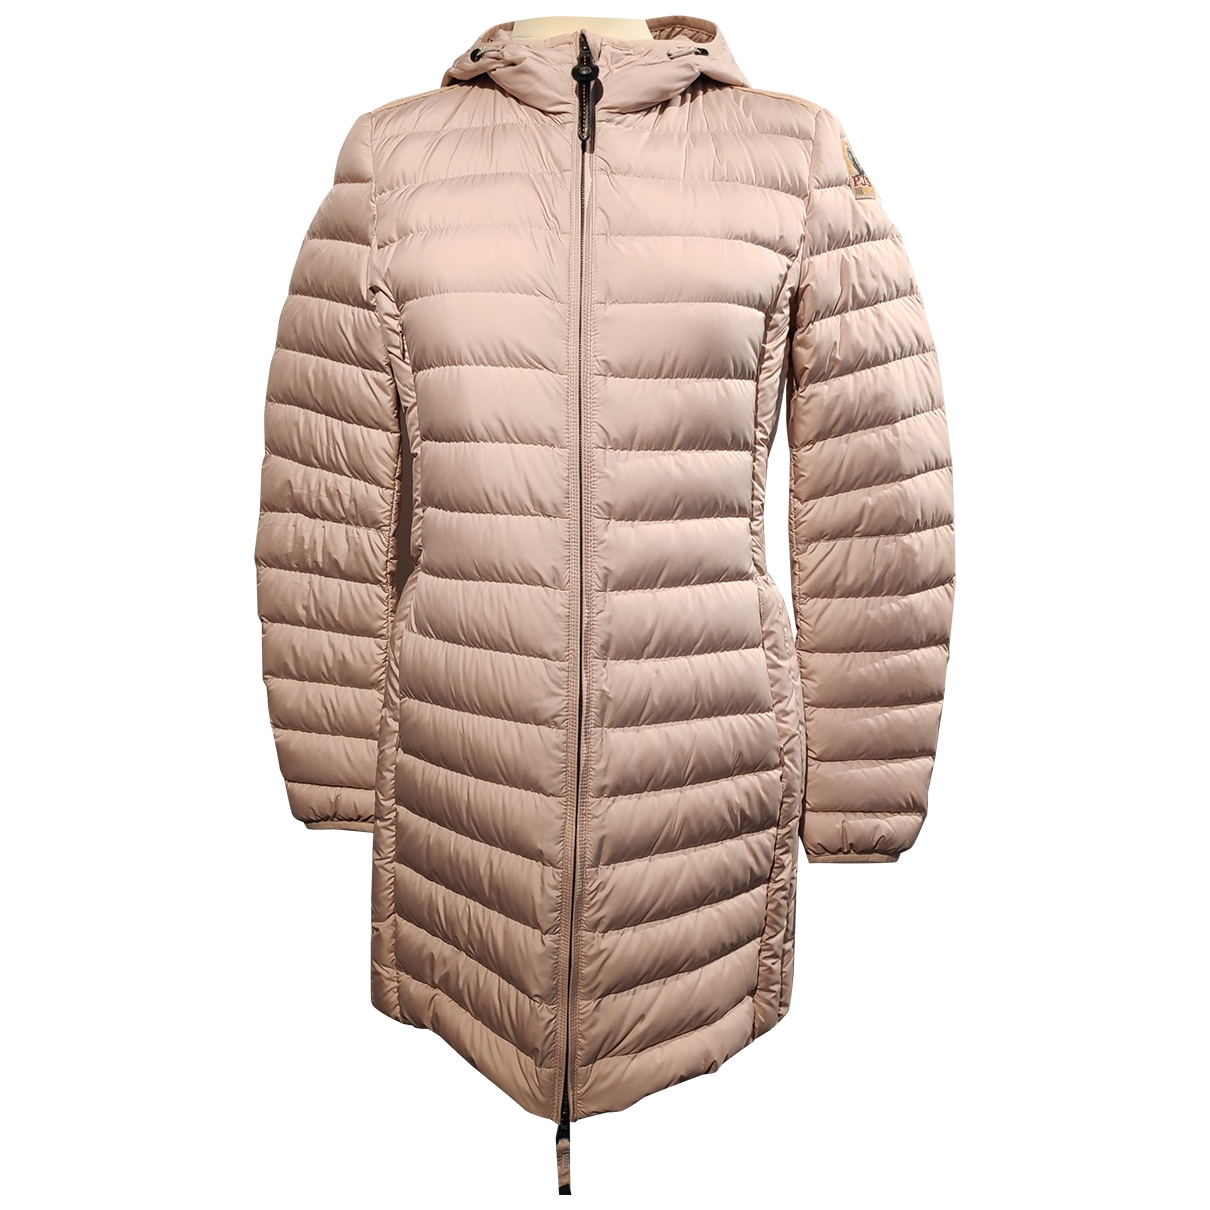 Parajumpers \N Pink jacket for Women S International